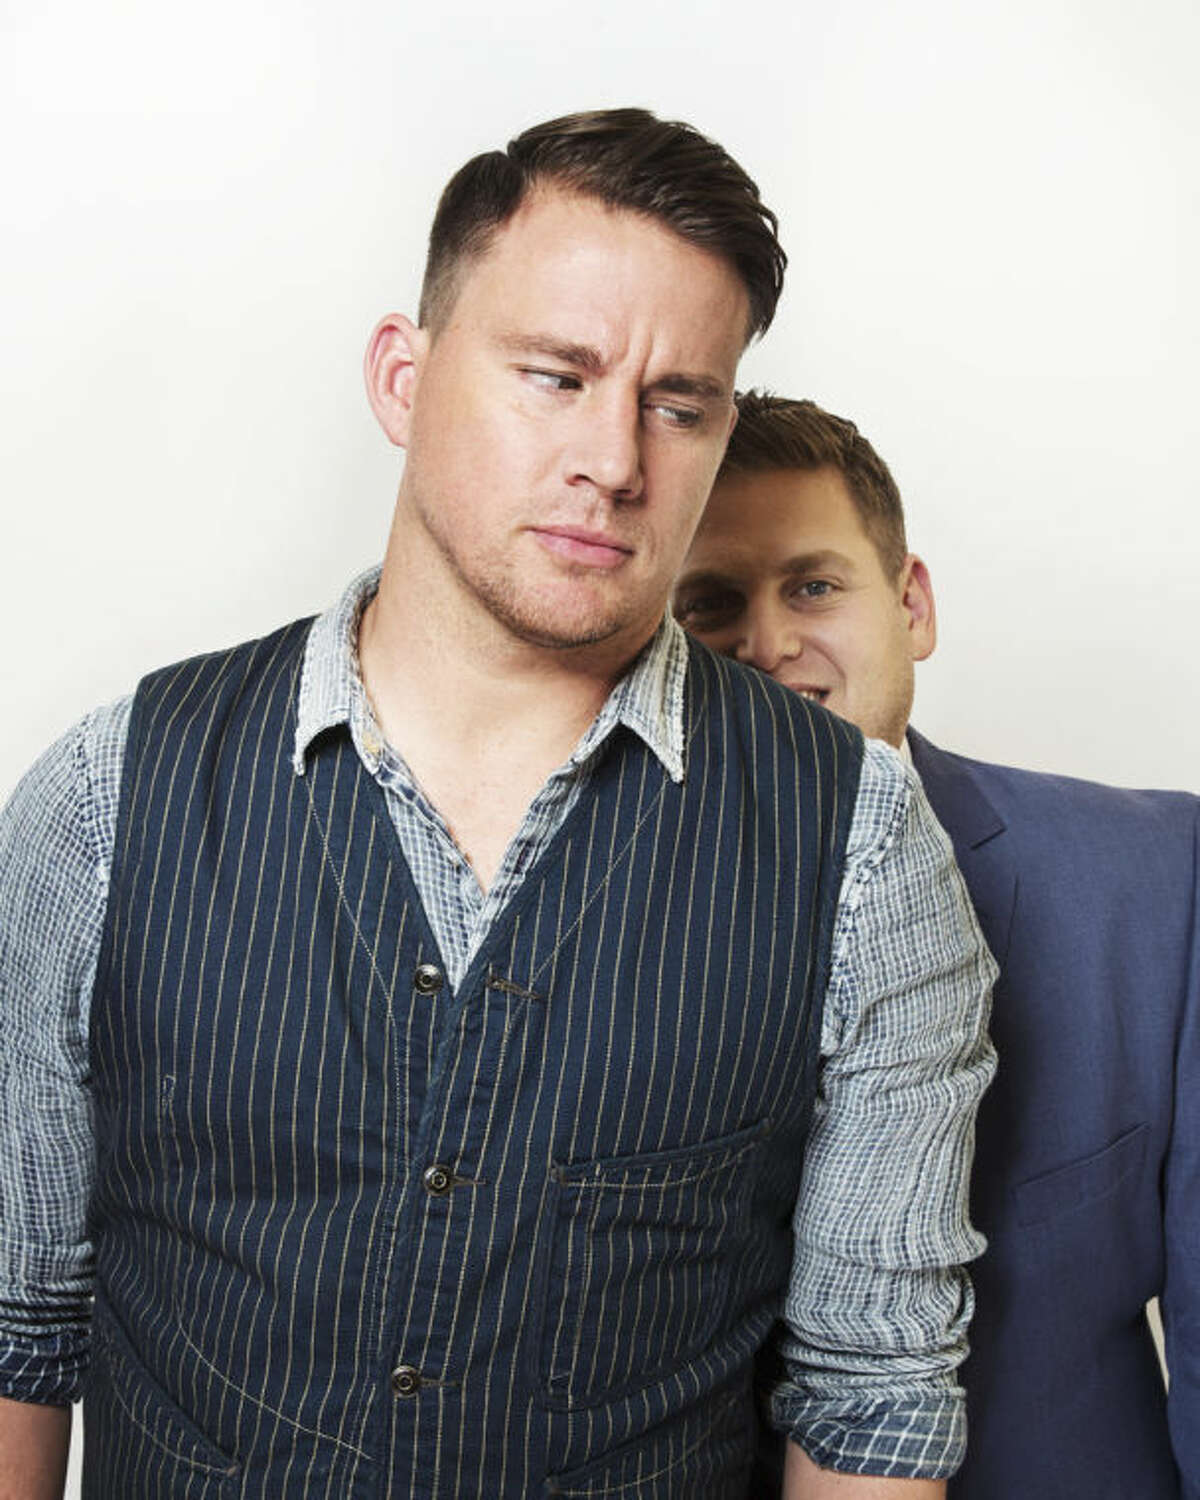 AP photo In this Thursday, June 5, 2014, photo, co-stars Channing Tatum, left, and Jonah Hill, right, pose for a portrait in promotion of their new film